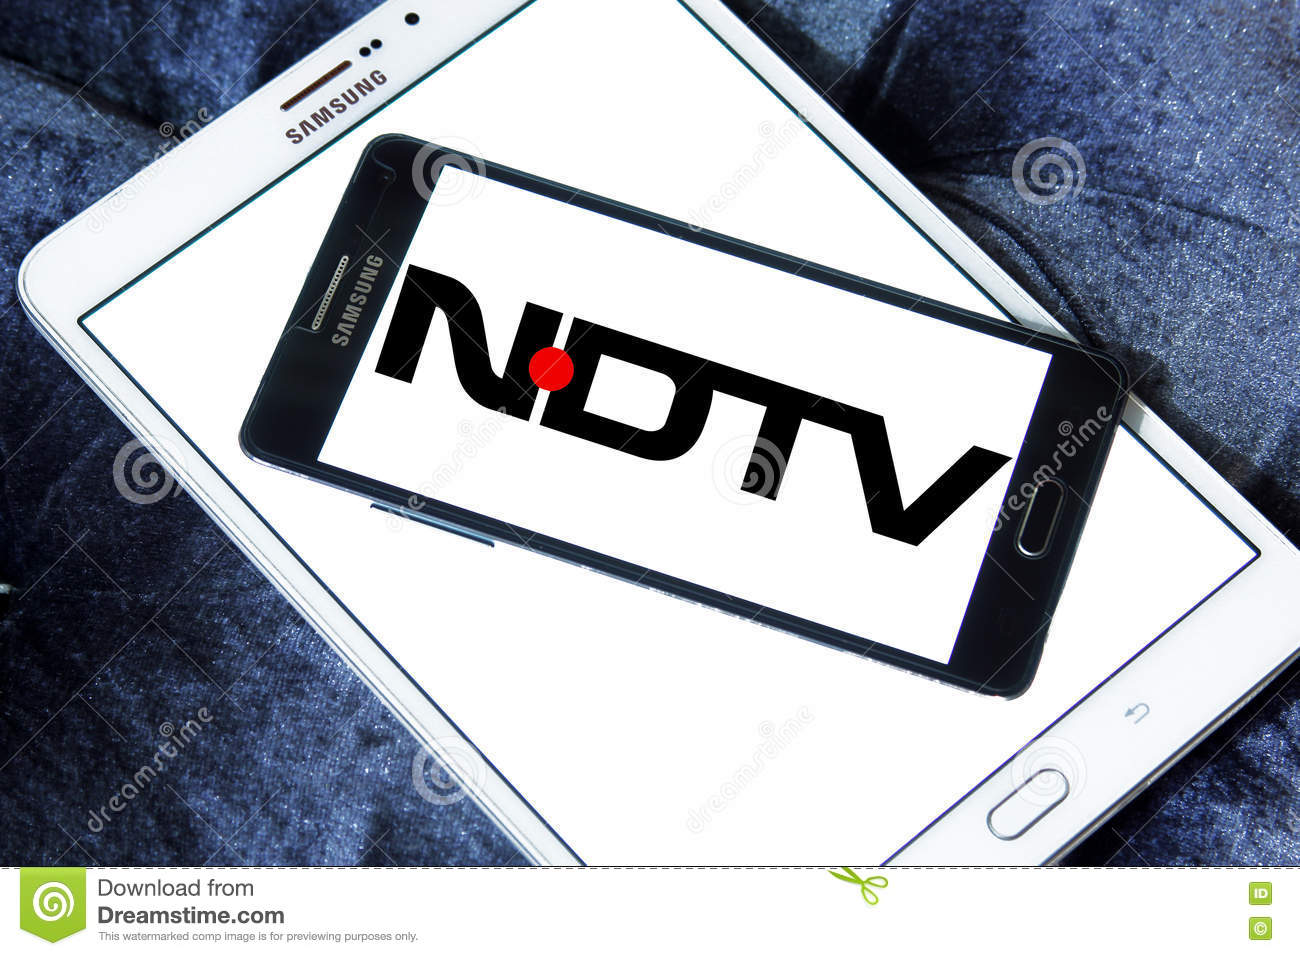 Nd tv logo editorial photo  Image of network, logo, mobile - 77073226